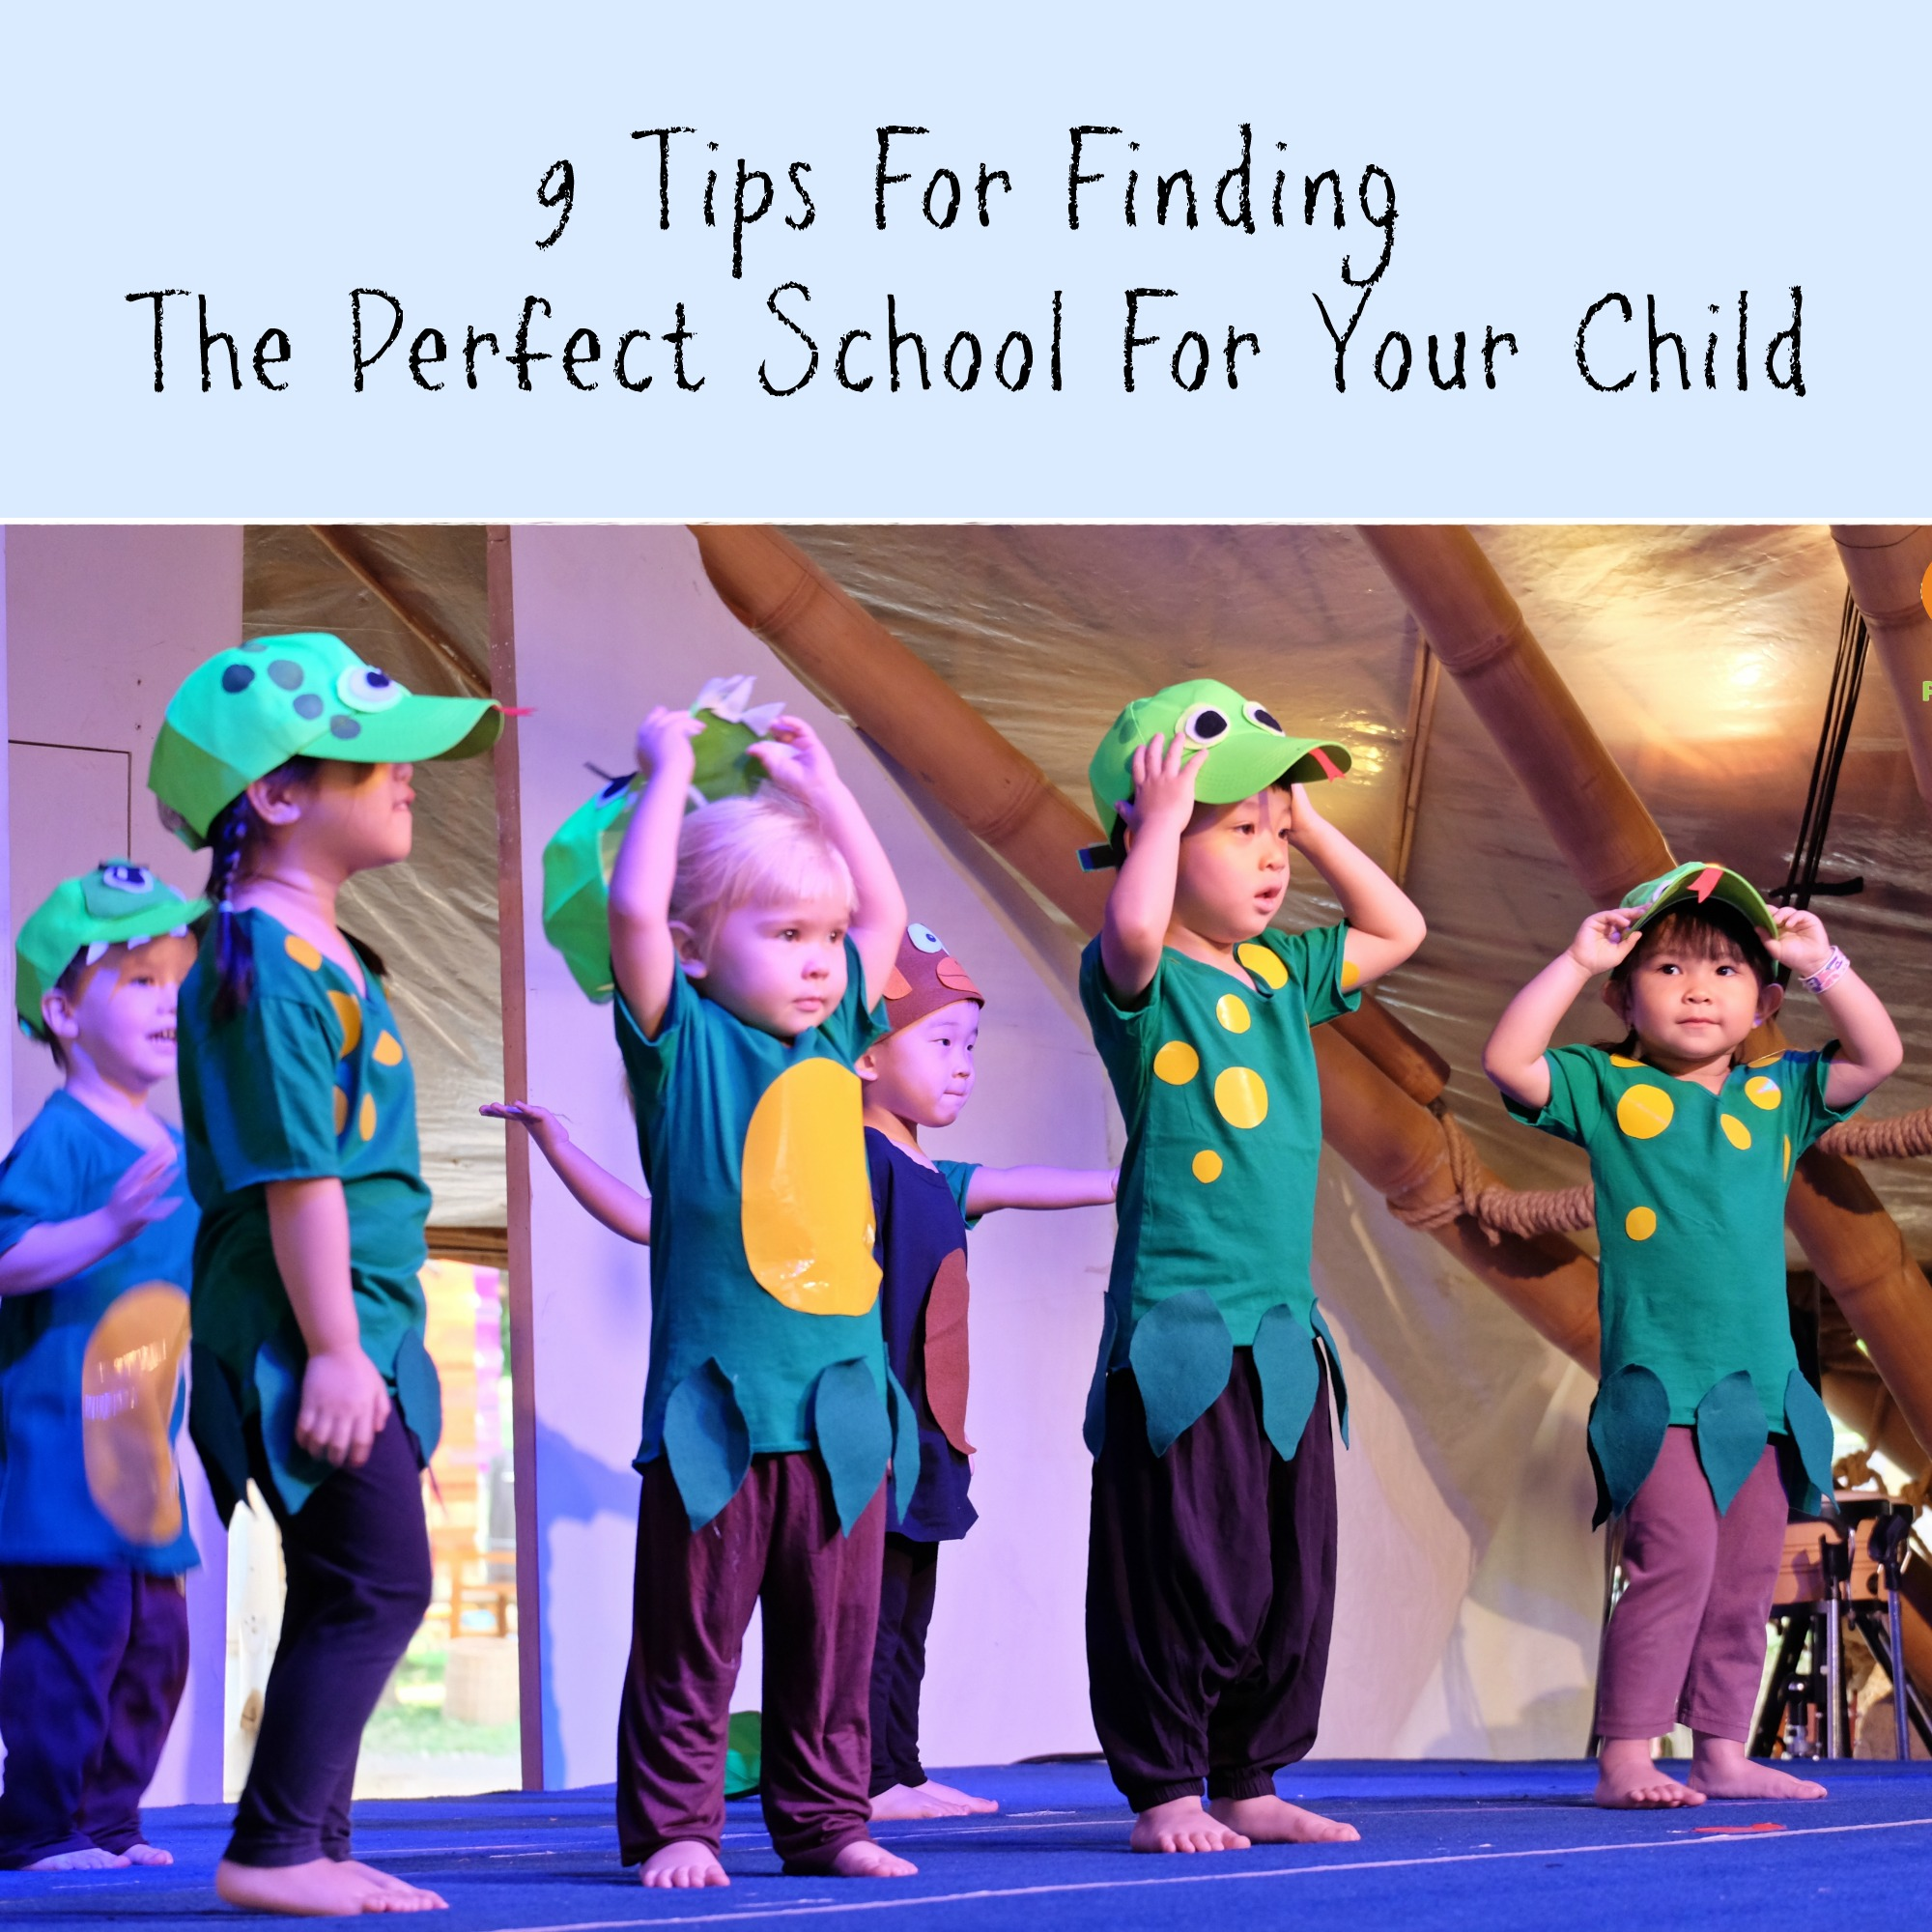 9 Tips For Finding The Perfect School For Your Child